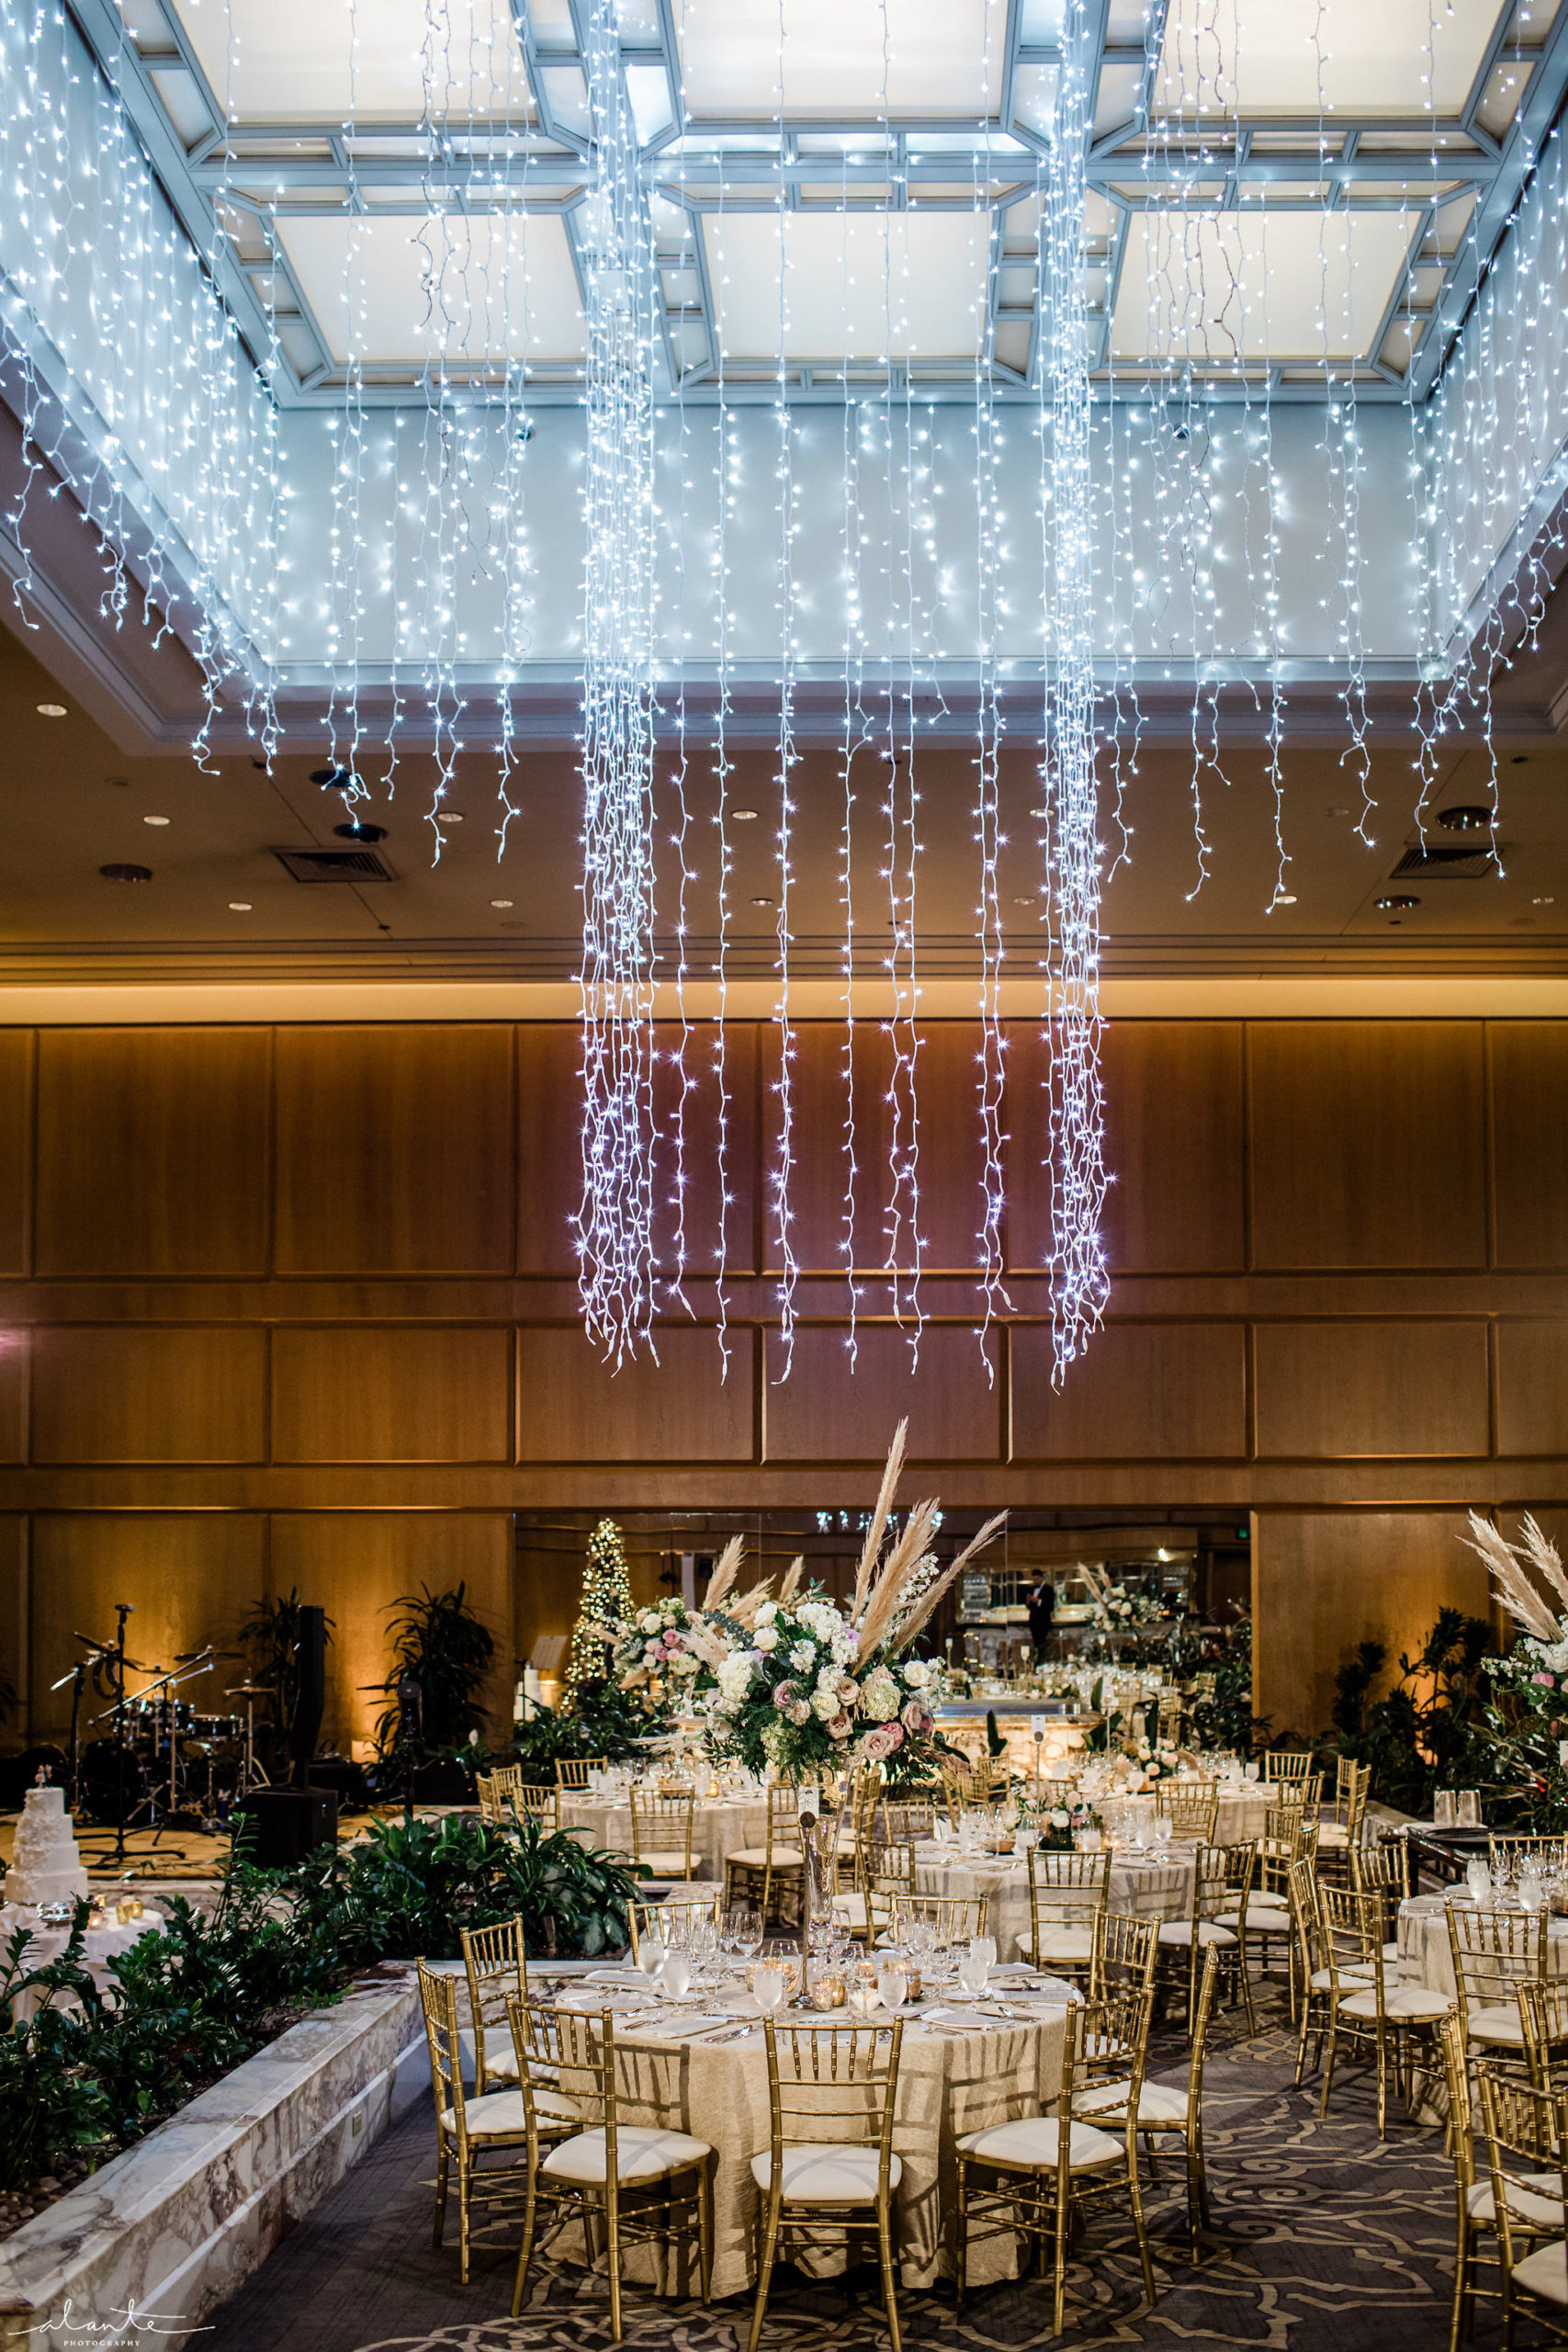 New Years Eve wedding reception with gold tables and chairs and tall white and blush floral with pampas grass under a hanging Christmas light chandelier.